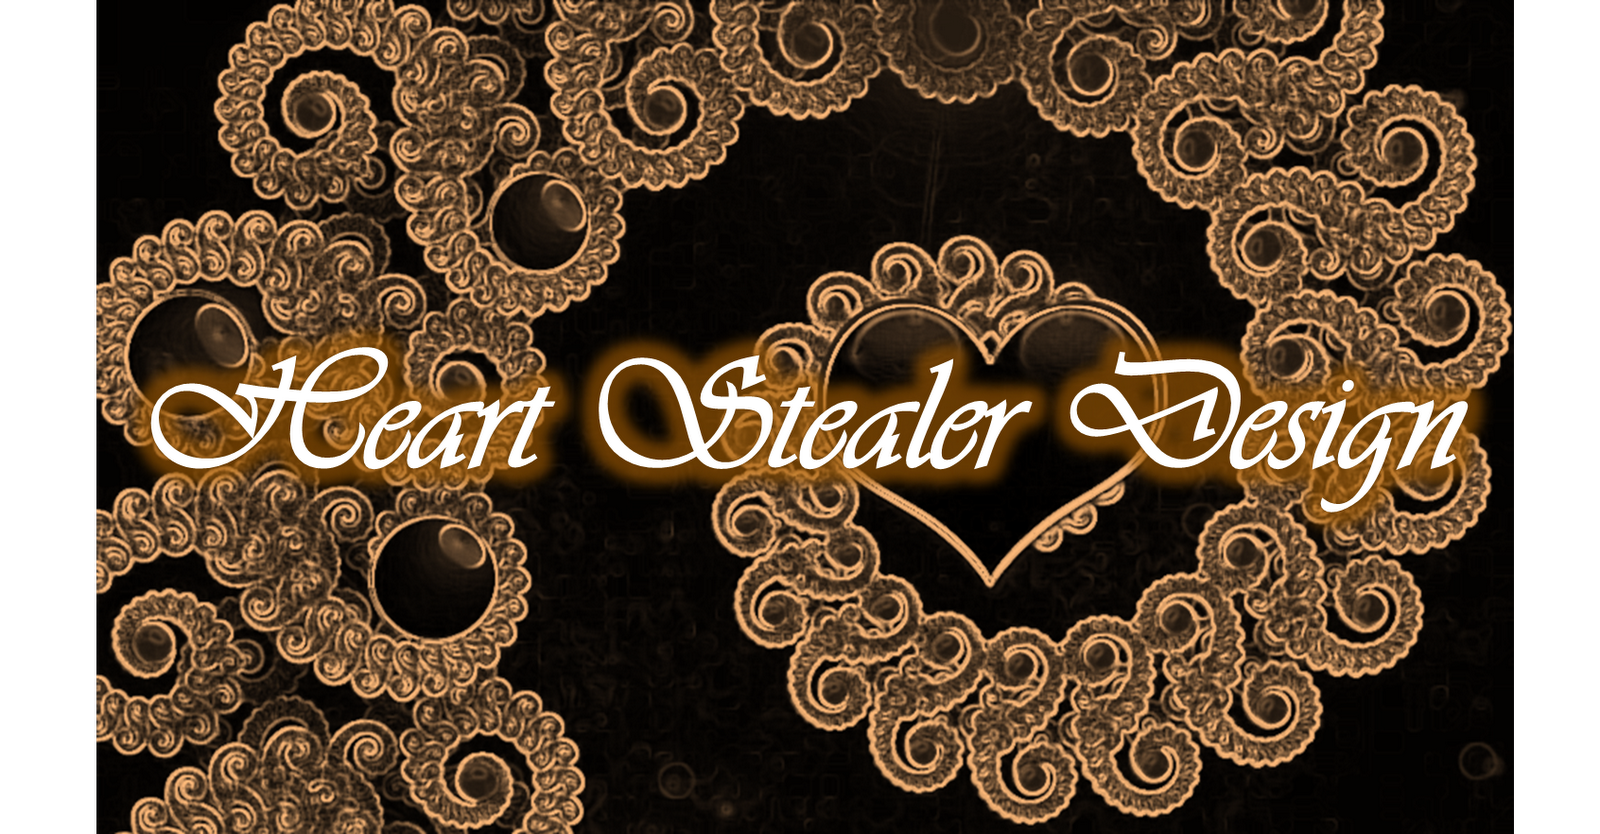 My heart Stealer Quilling Design Blog